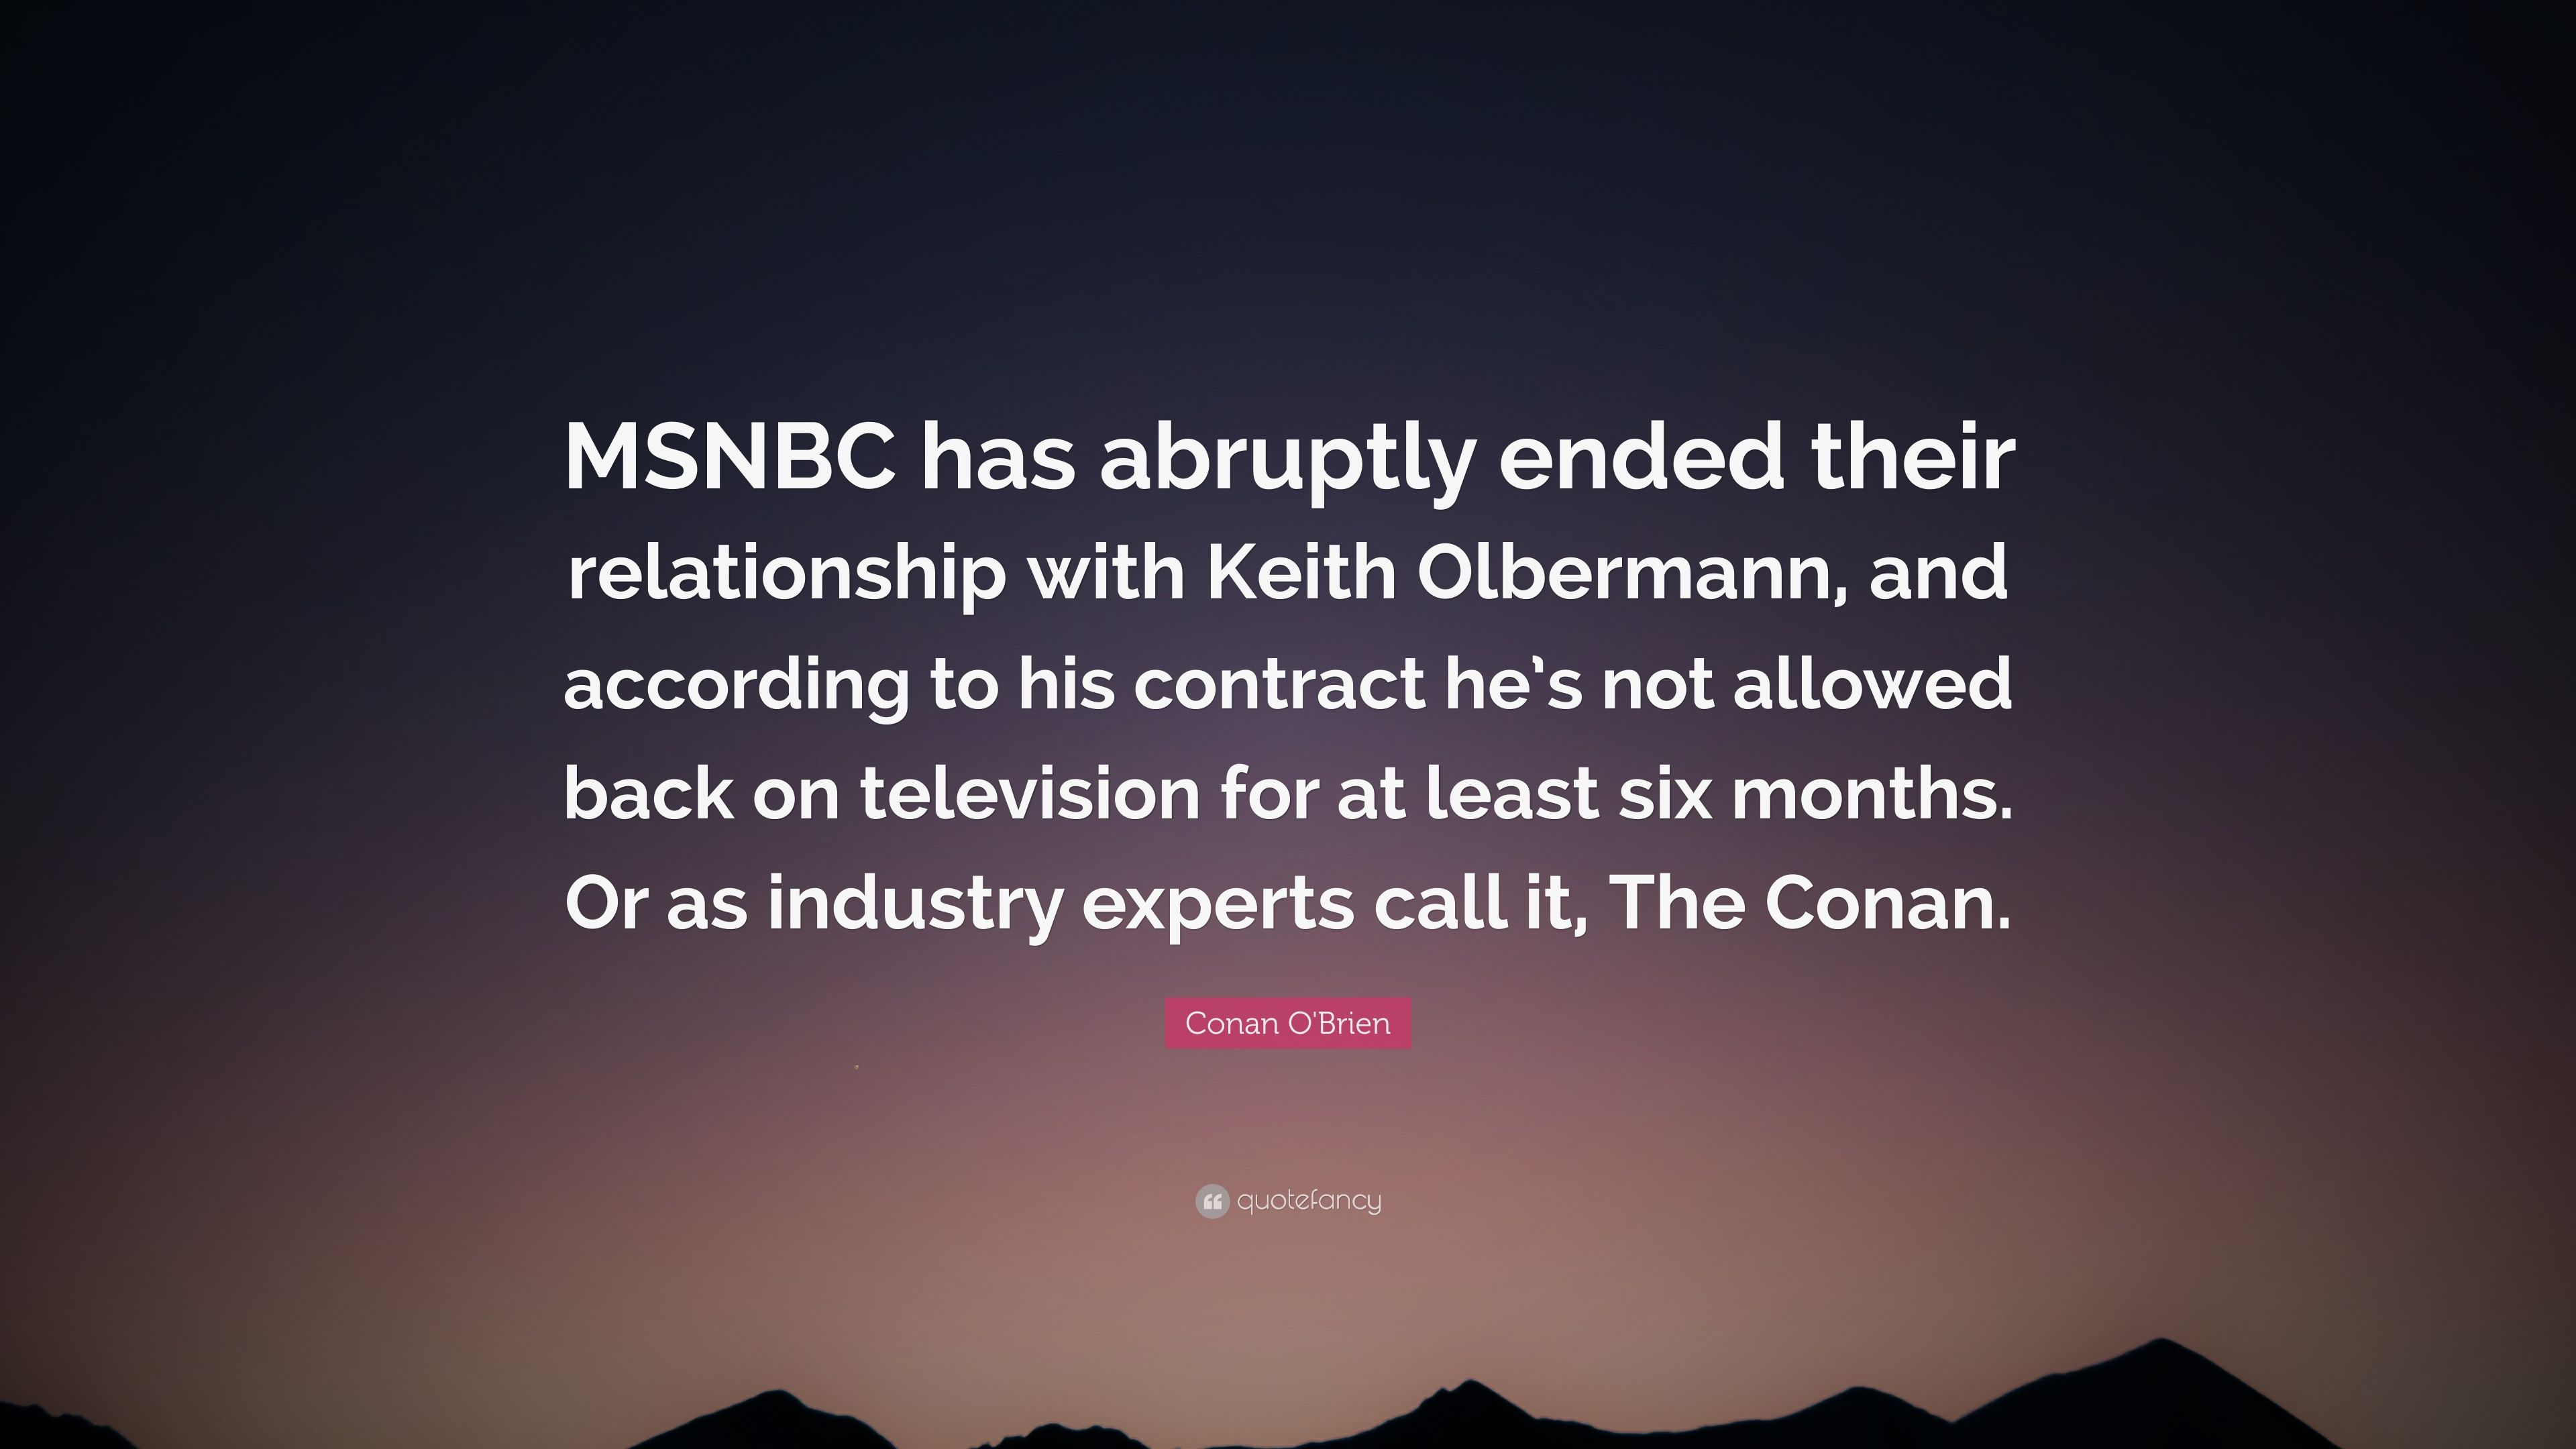 Conan obrien quote msnbc has abruptly ended their relationship with keith olbermann